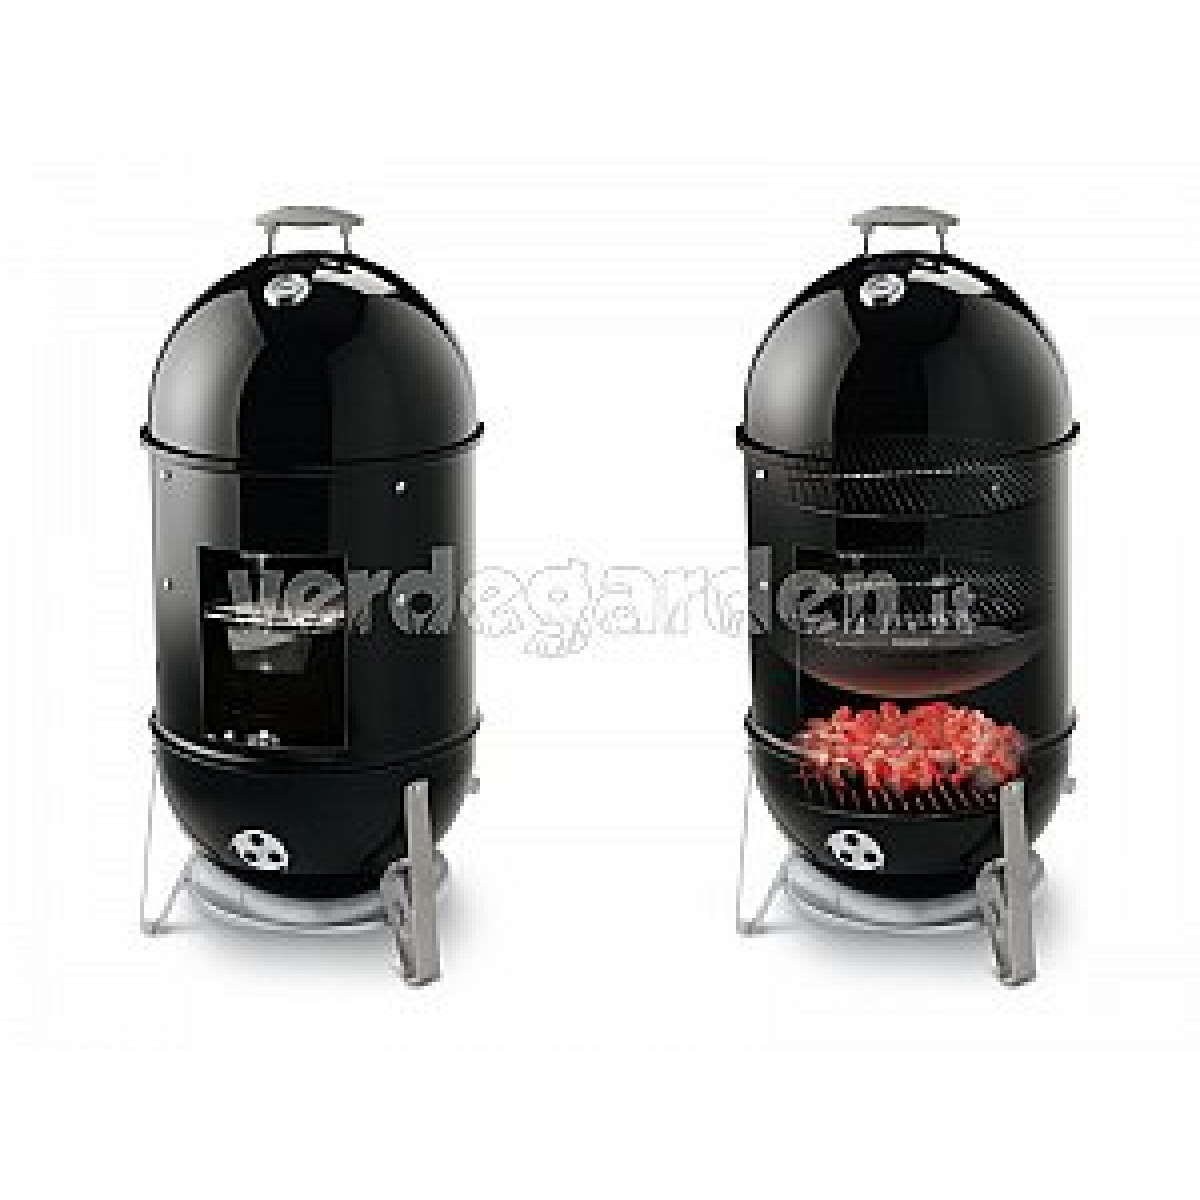 smokey mountain cooker for sale on verdegarden. Black Bedroom Furniture Sets. Home Design Ideas